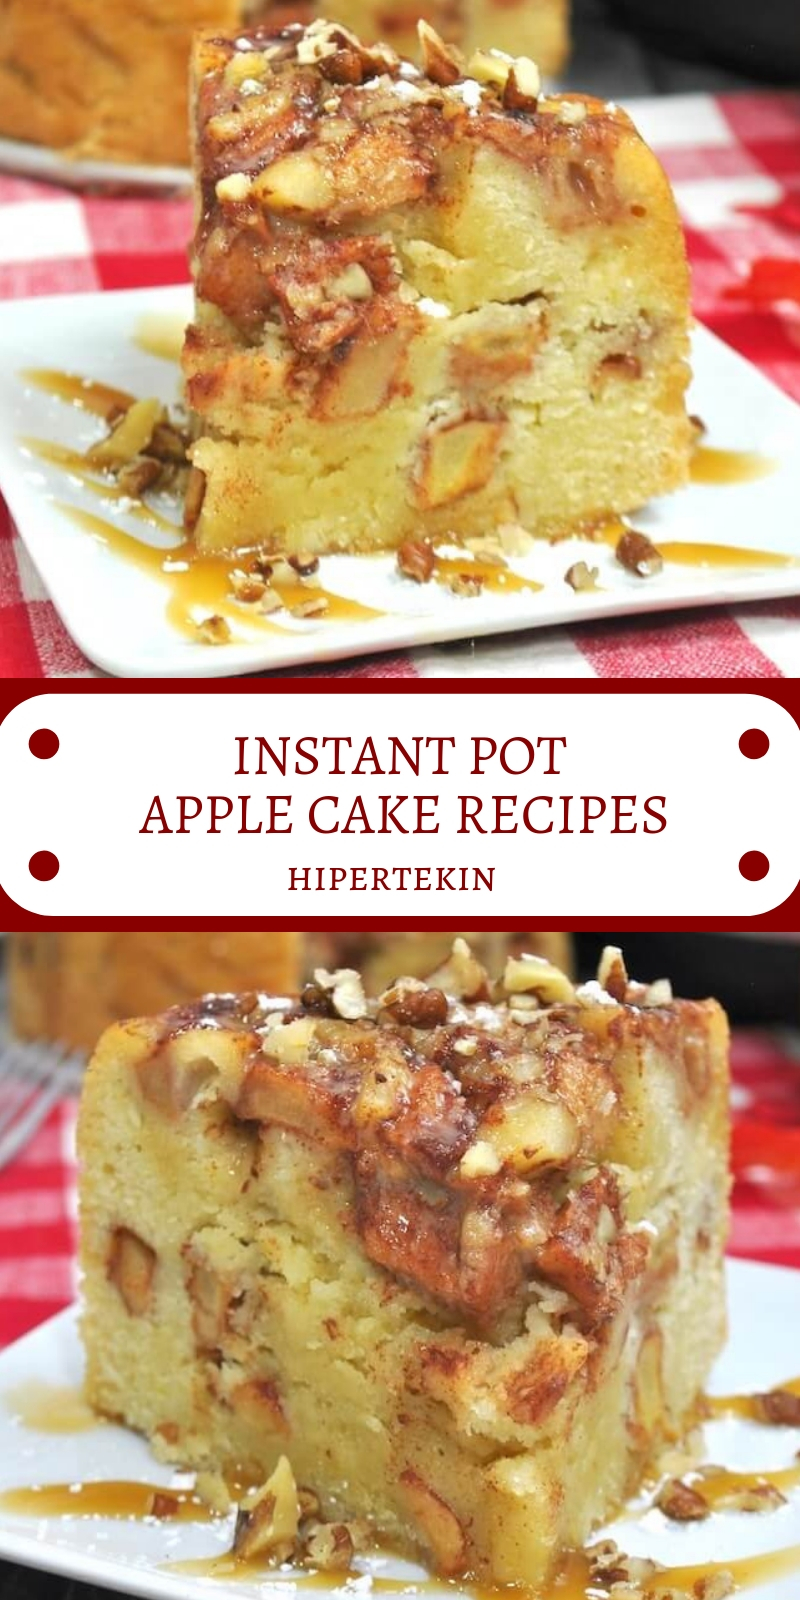 INSTANT POT APPLE CAKE RECIPES